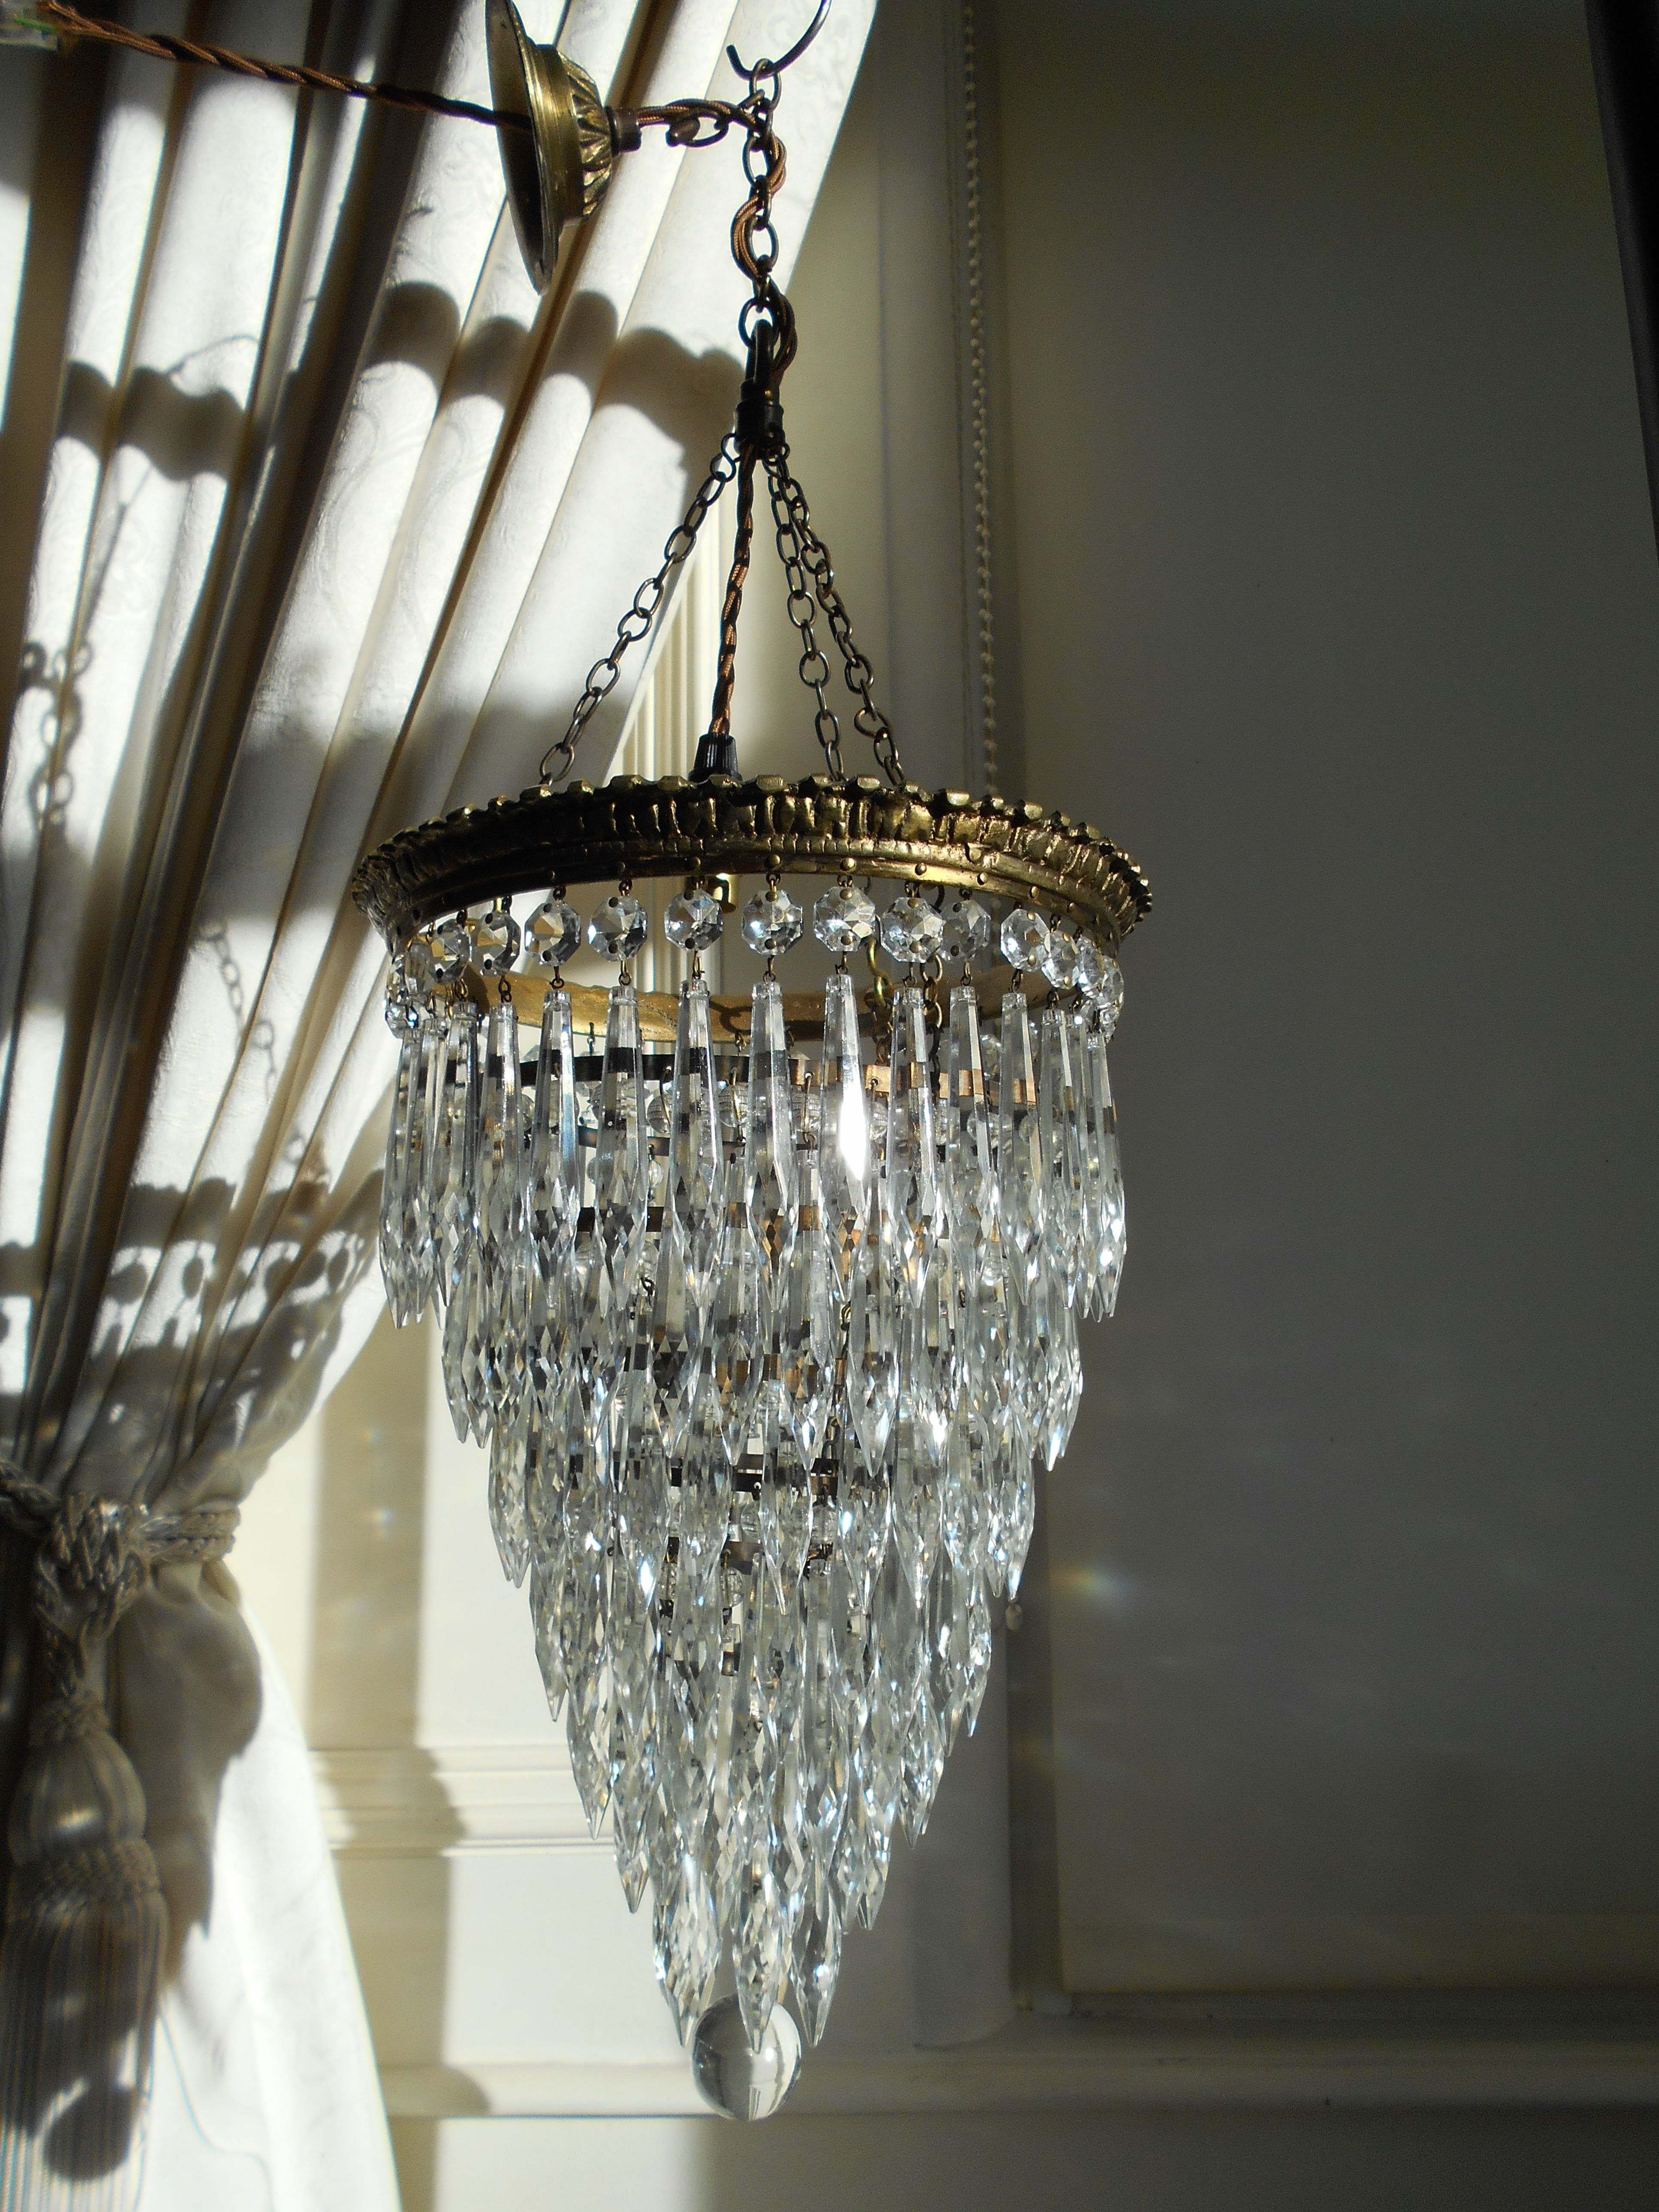 Mckamey 4 Light Crystal Chandeliers Within Fashionable Vintage French 7 Tier Crystal Waterfall Chandelier (View 16 of 20)